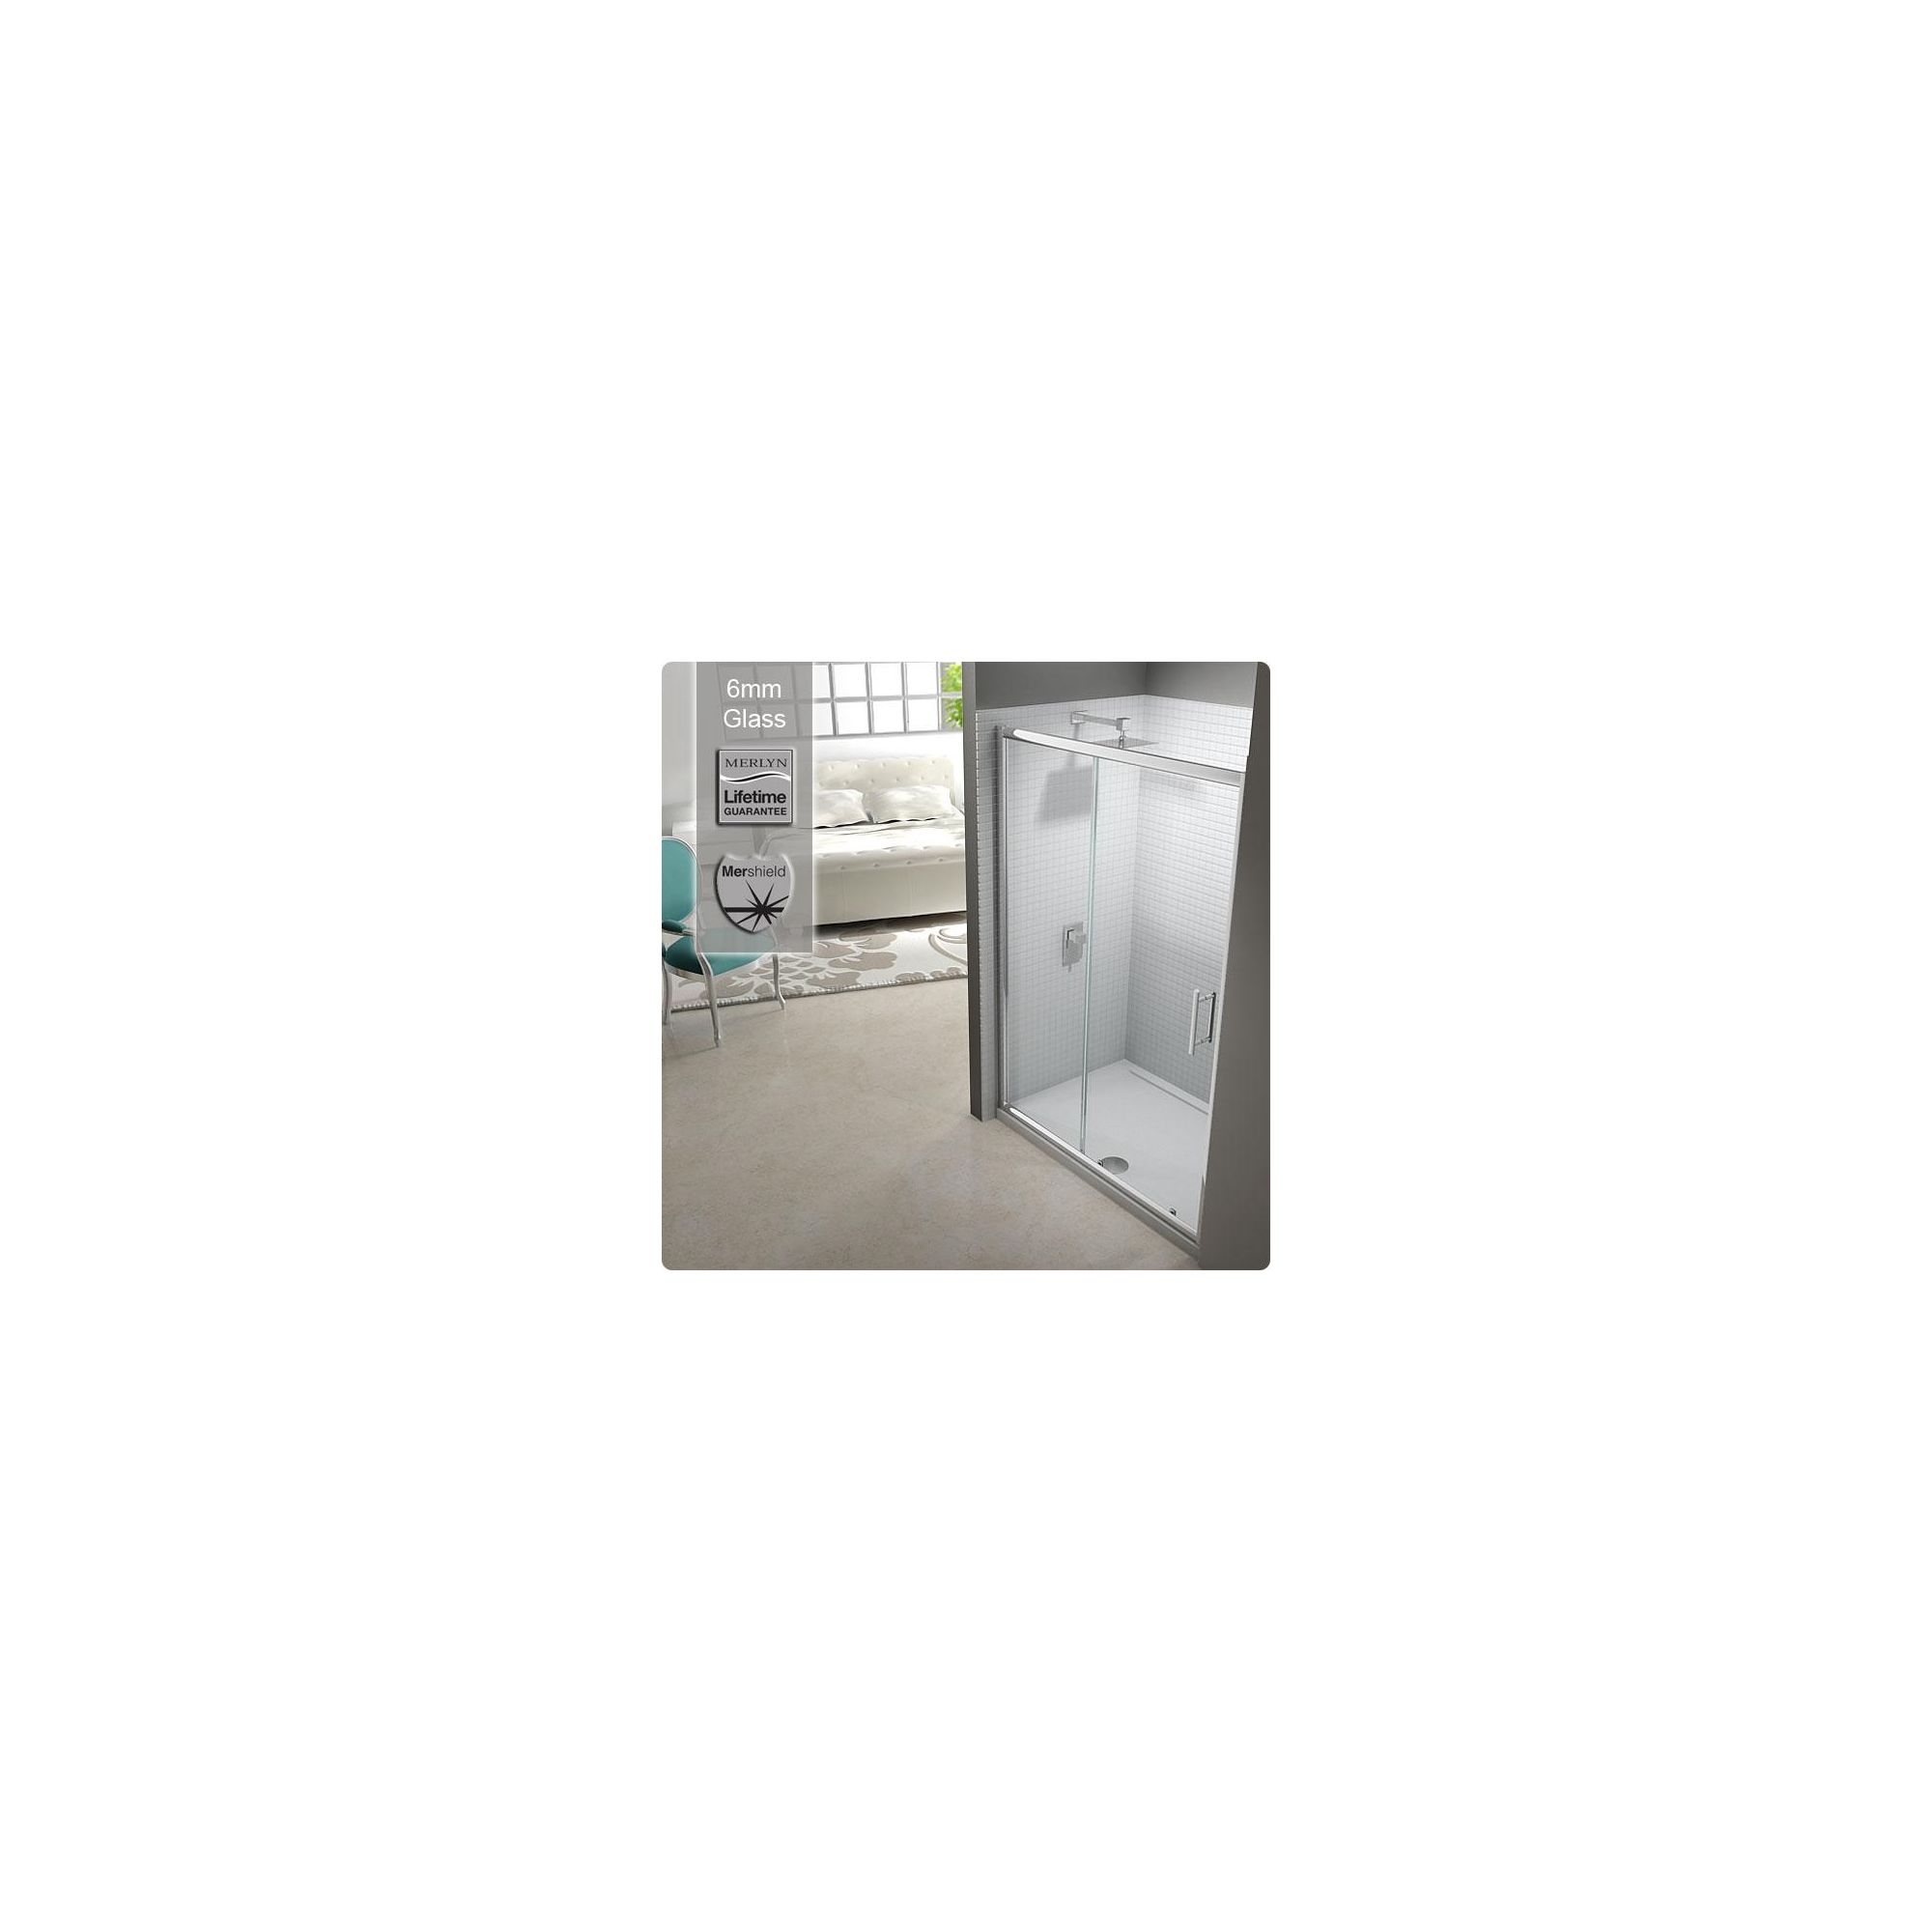 Merlyn Series 6 Sliding Door Shower Enclosure, ALCOVE 1000mm x 800mm, Low Profile Tray, 6mm Glass at Tesco Direct